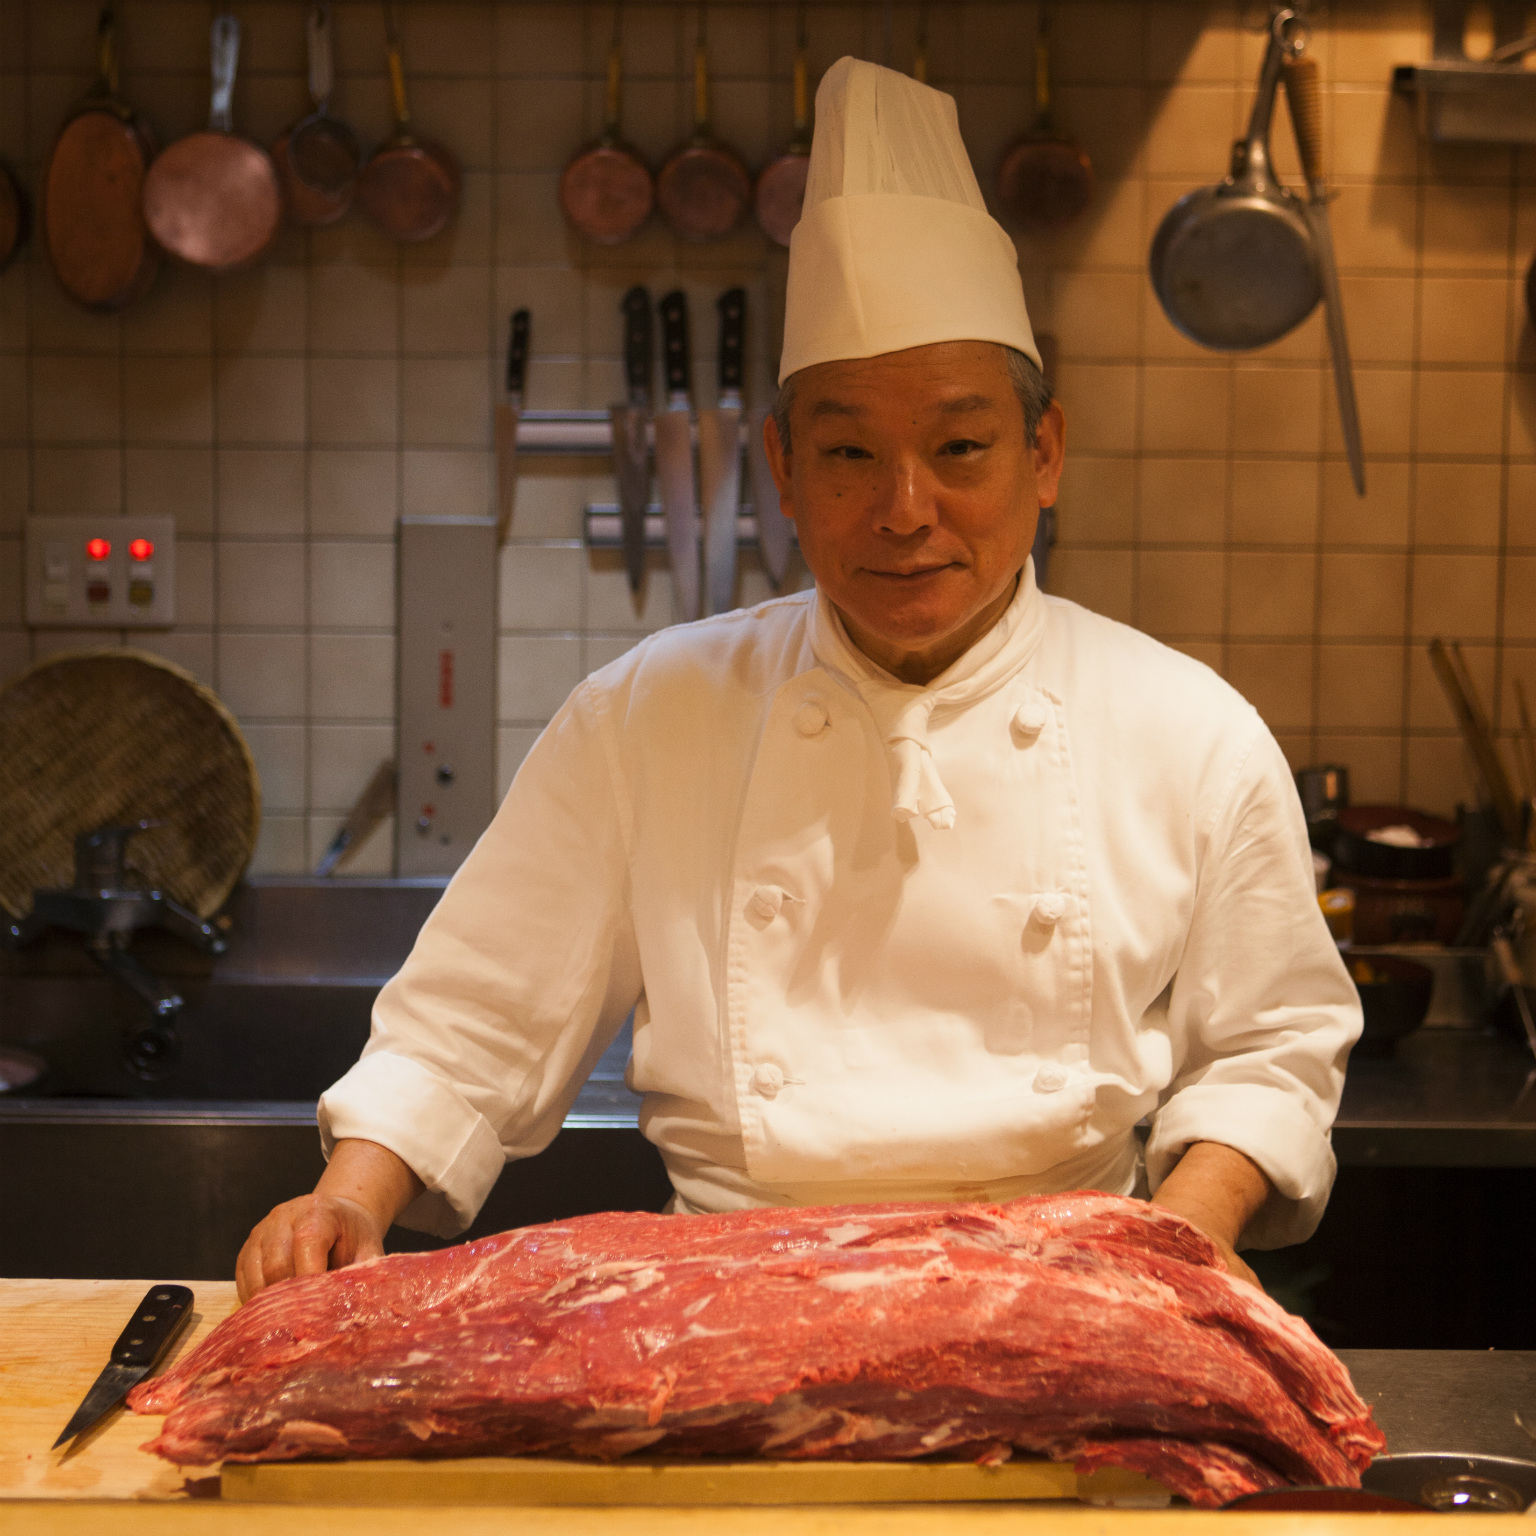 Fine Japanese beef in the sensitive hands of an affable chef